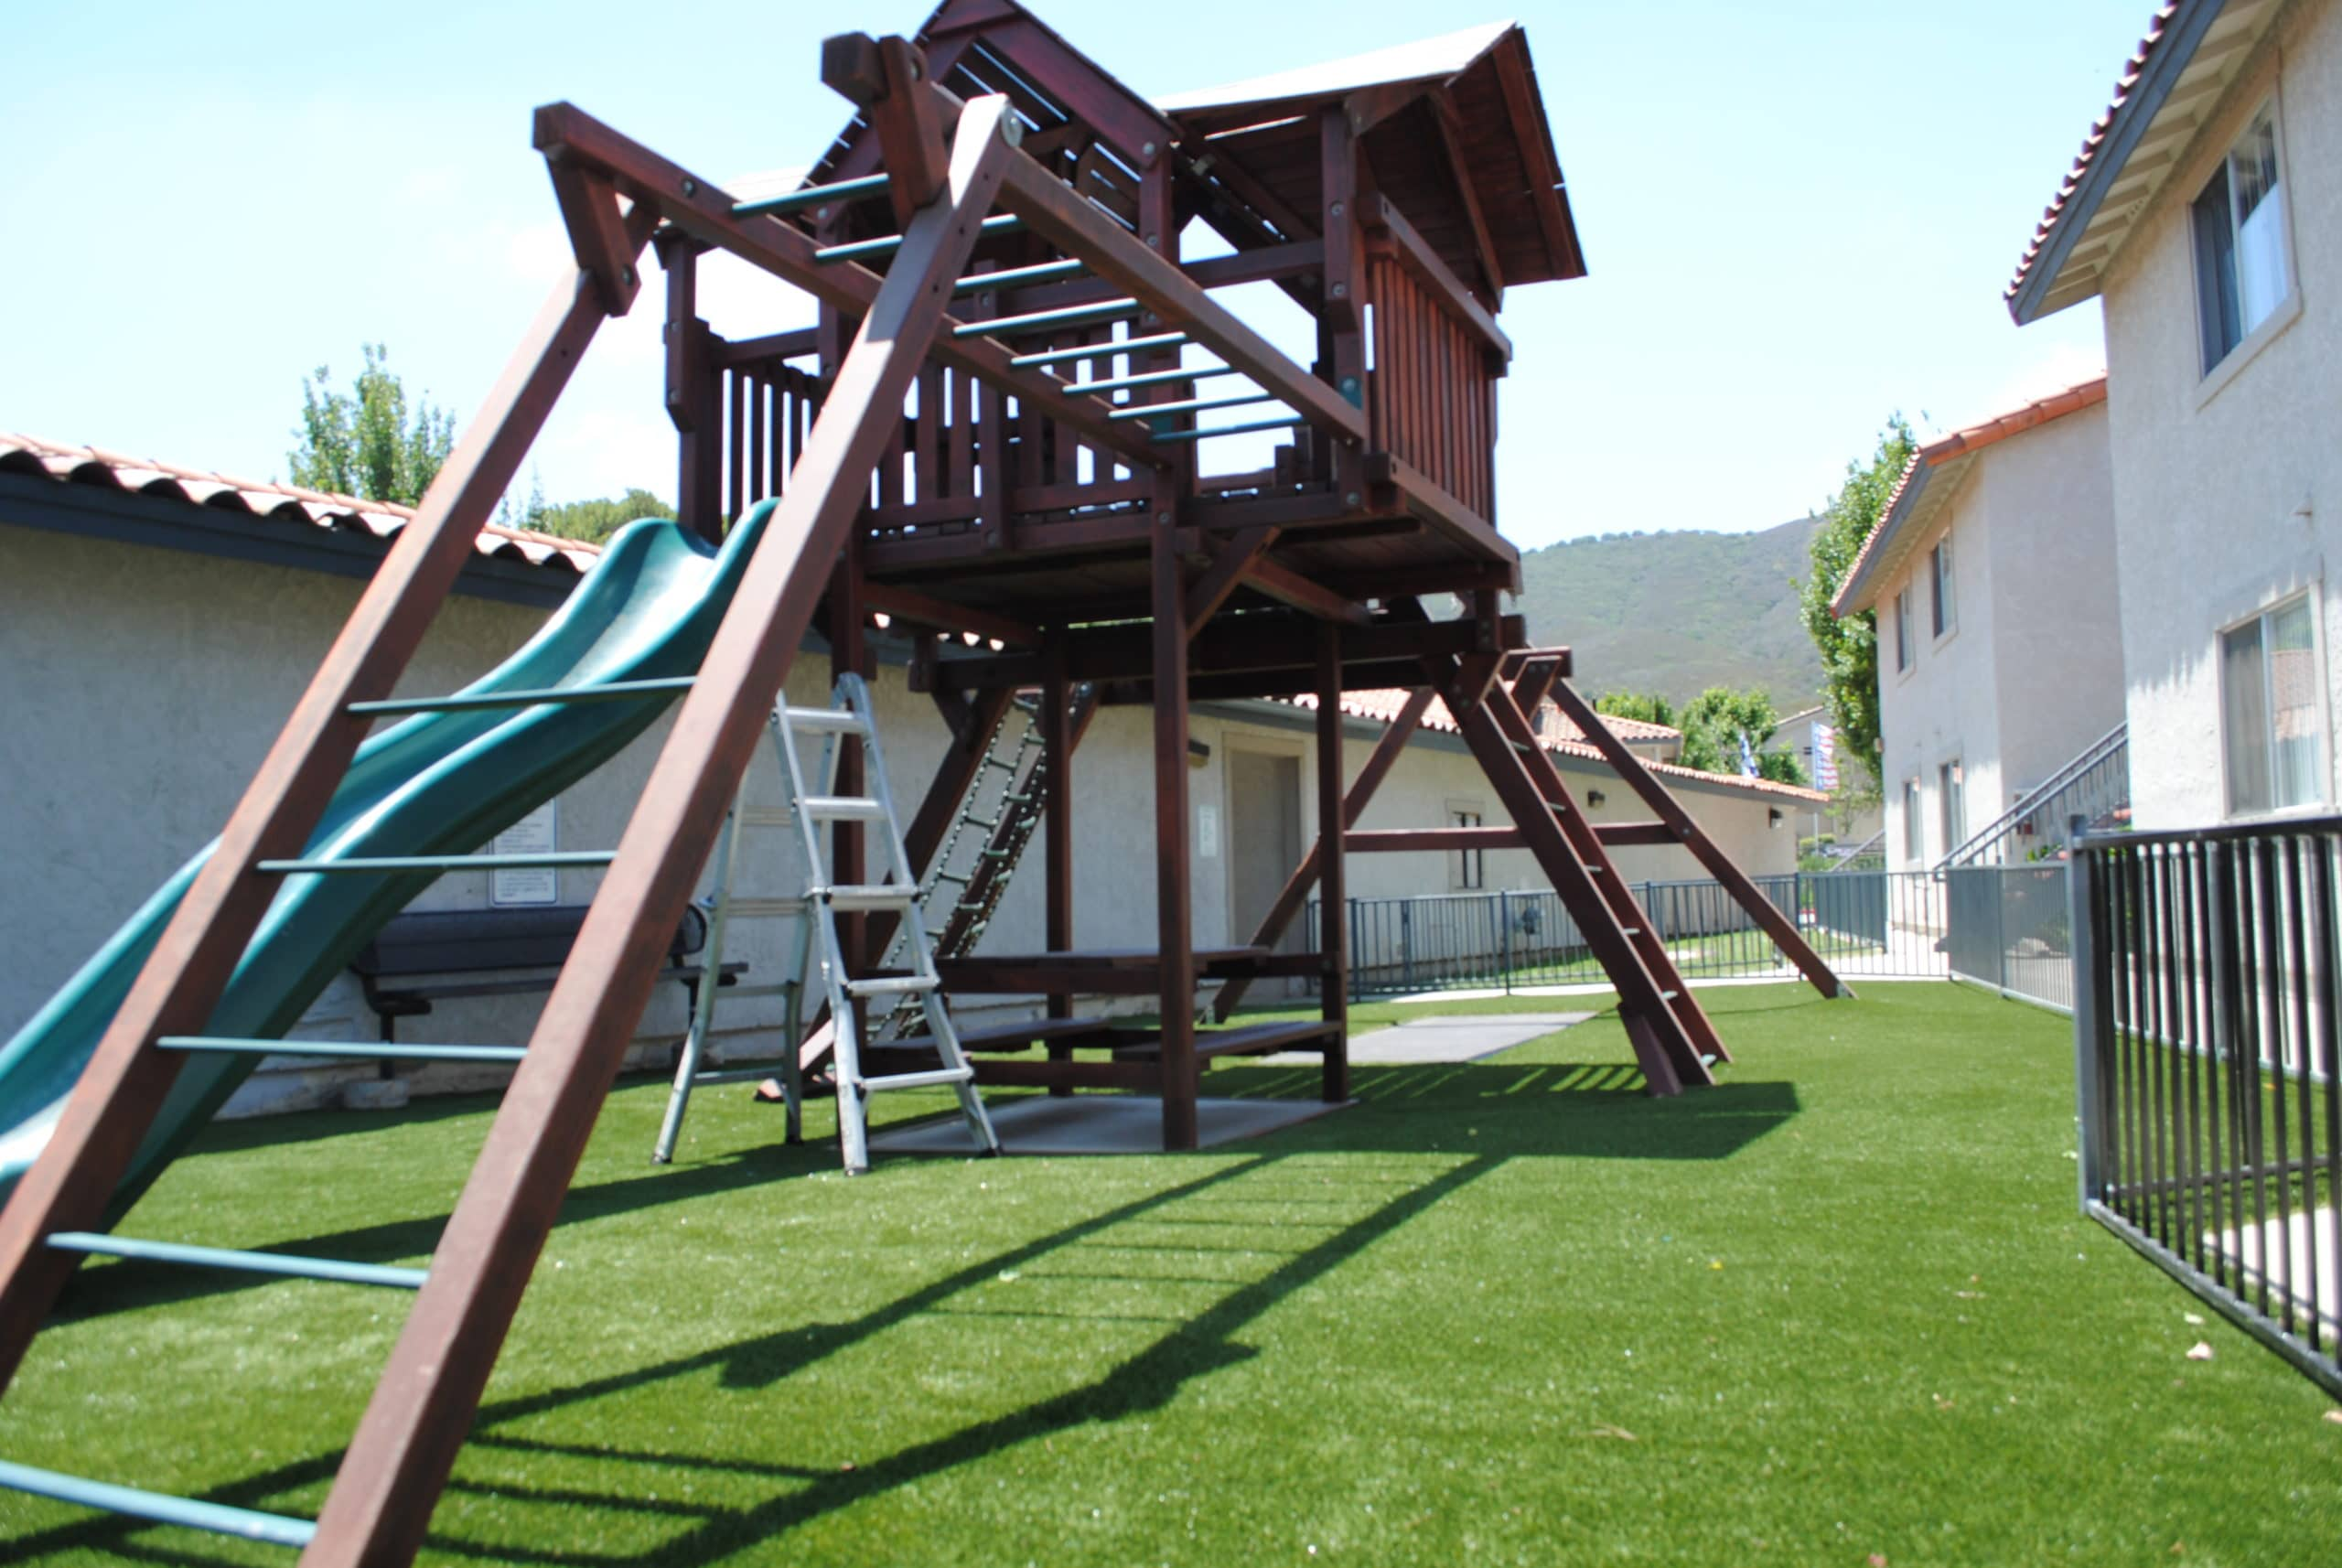 Buy Fake Grass Buy Cheap Artificial Grass For A Playground At Artificial Grass